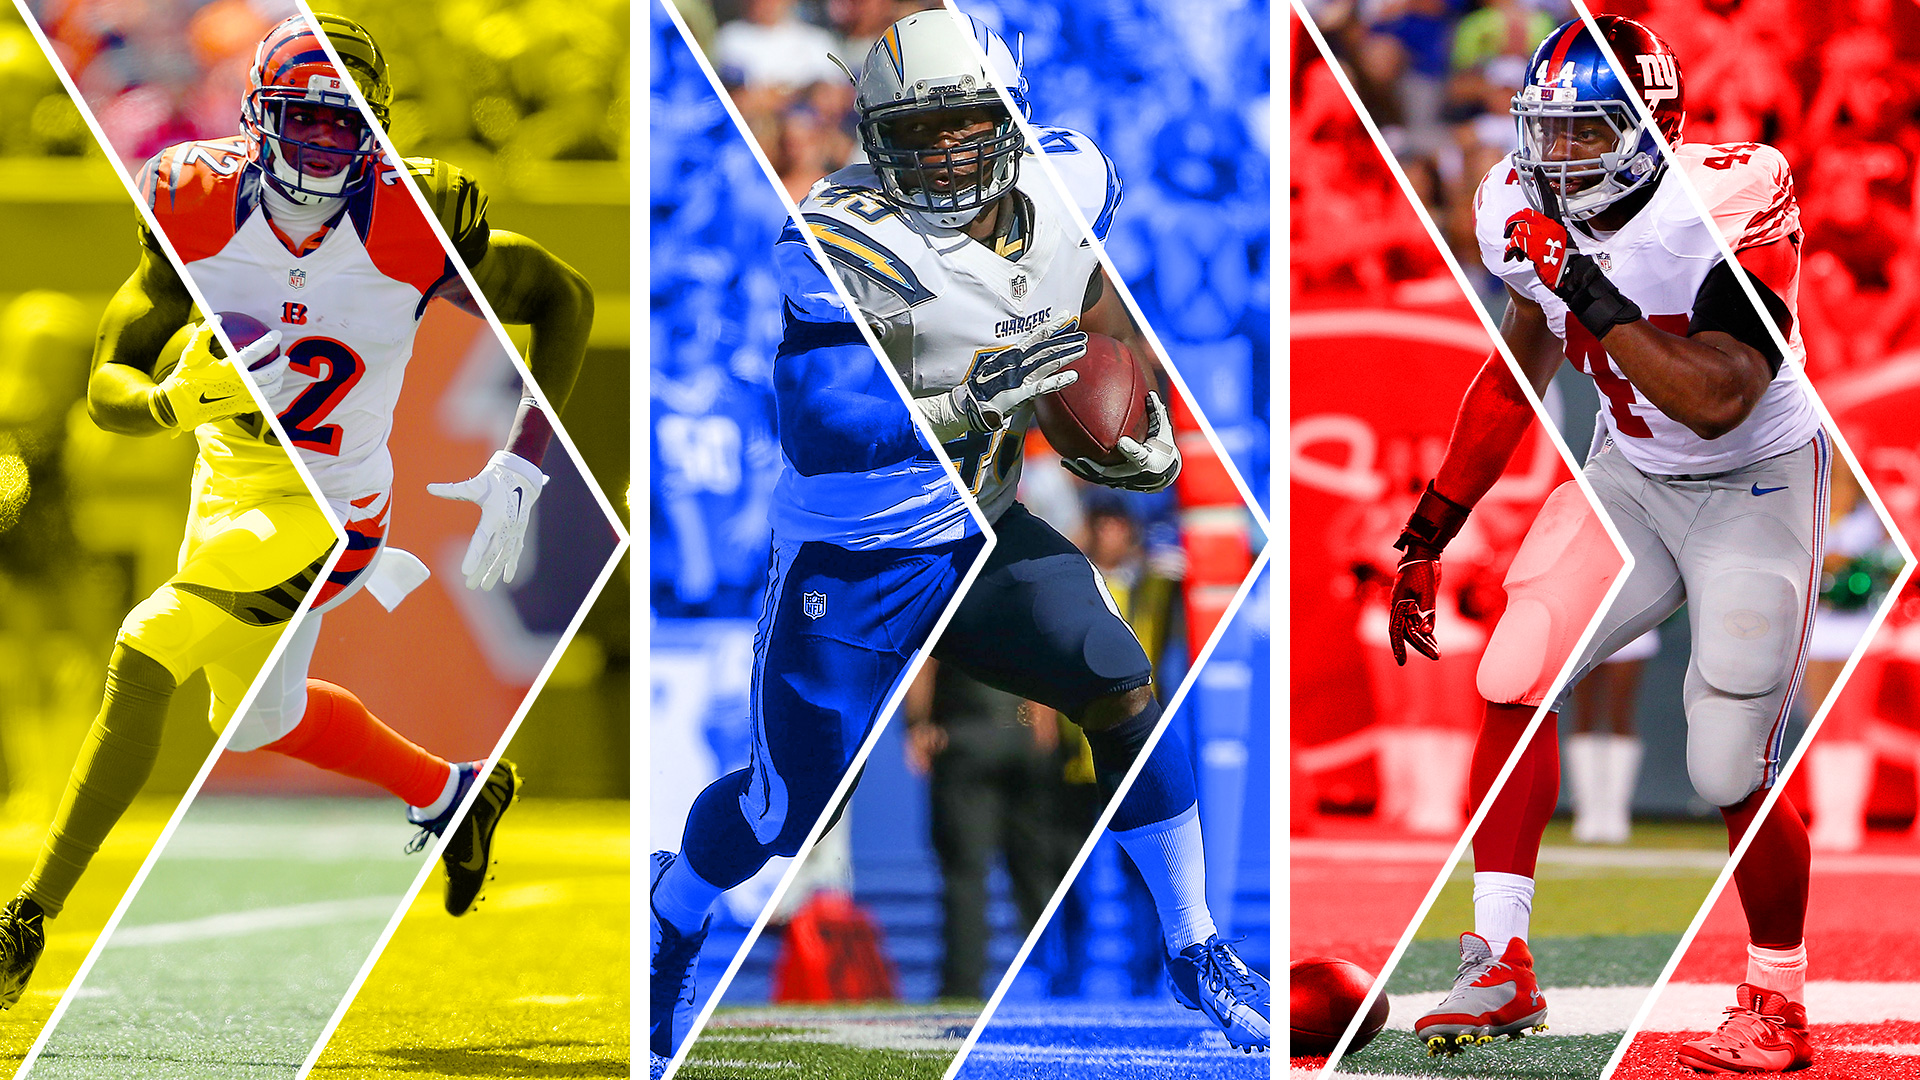 Week 6 fantasy football start/sit chat: Sunday 11 a.m. - 1 p.m. ET